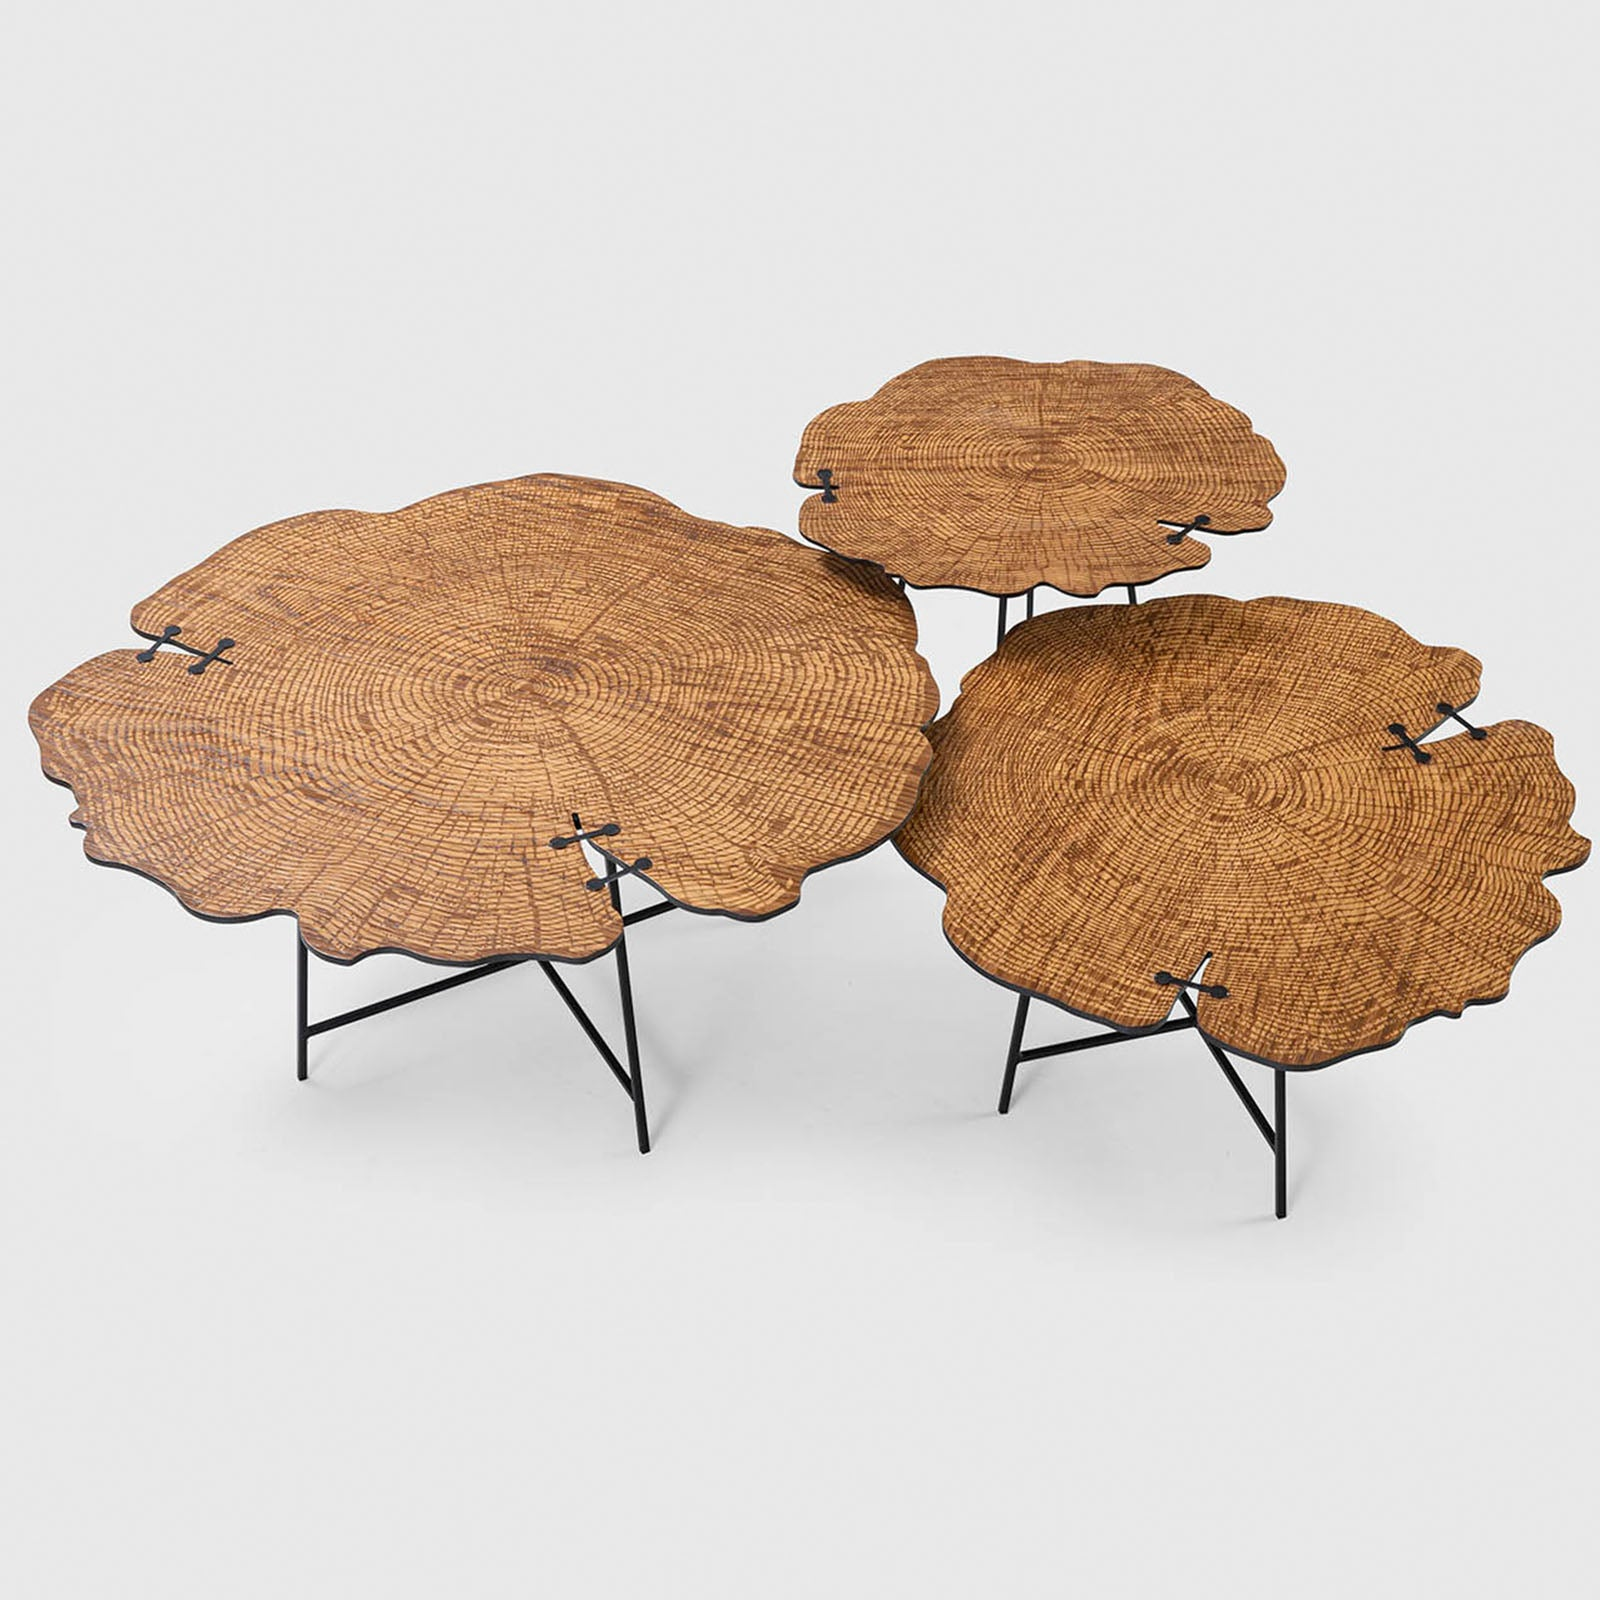 Pre-Order 50 days delivery  Set of 3 Olea Tables OLEA-001